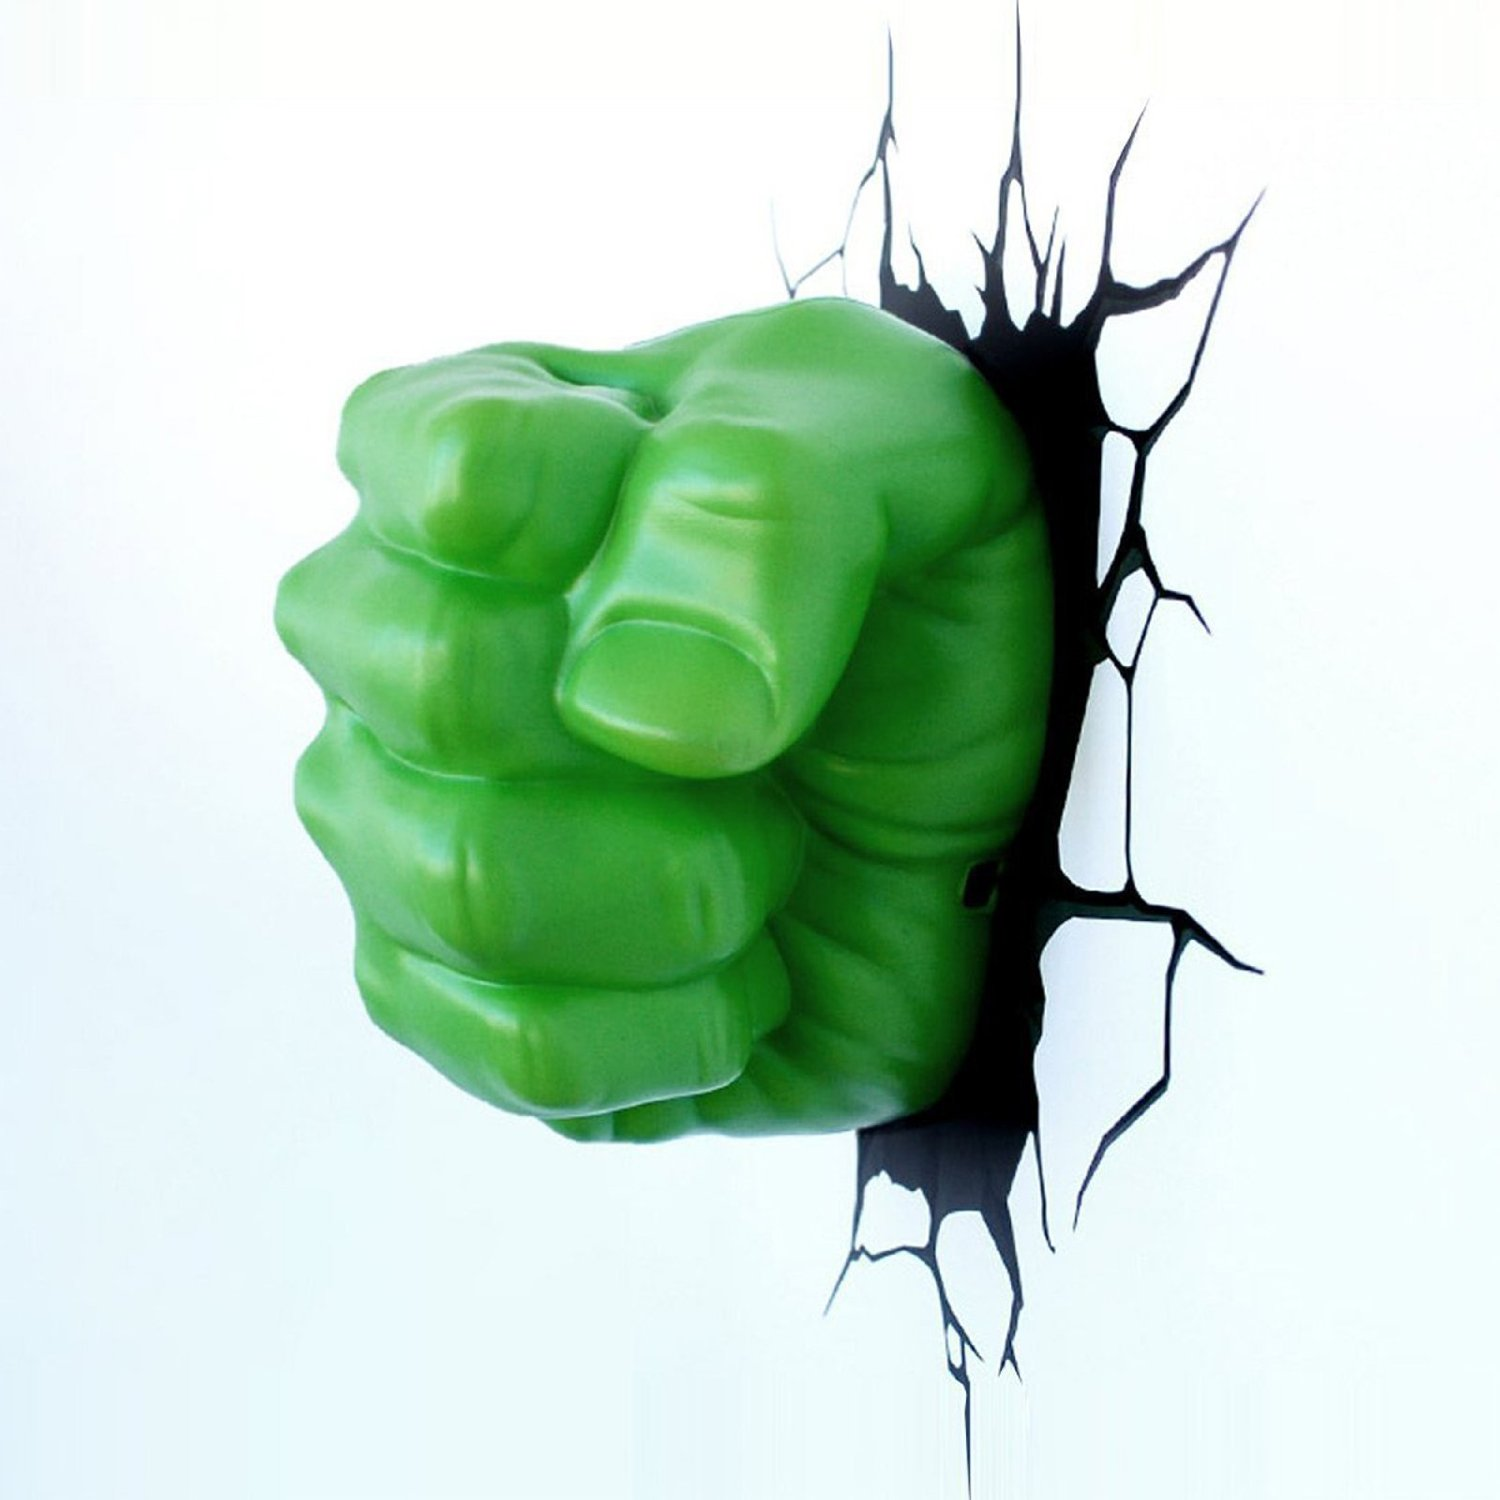 Hulk clipart hulk fist. Images for birthday party